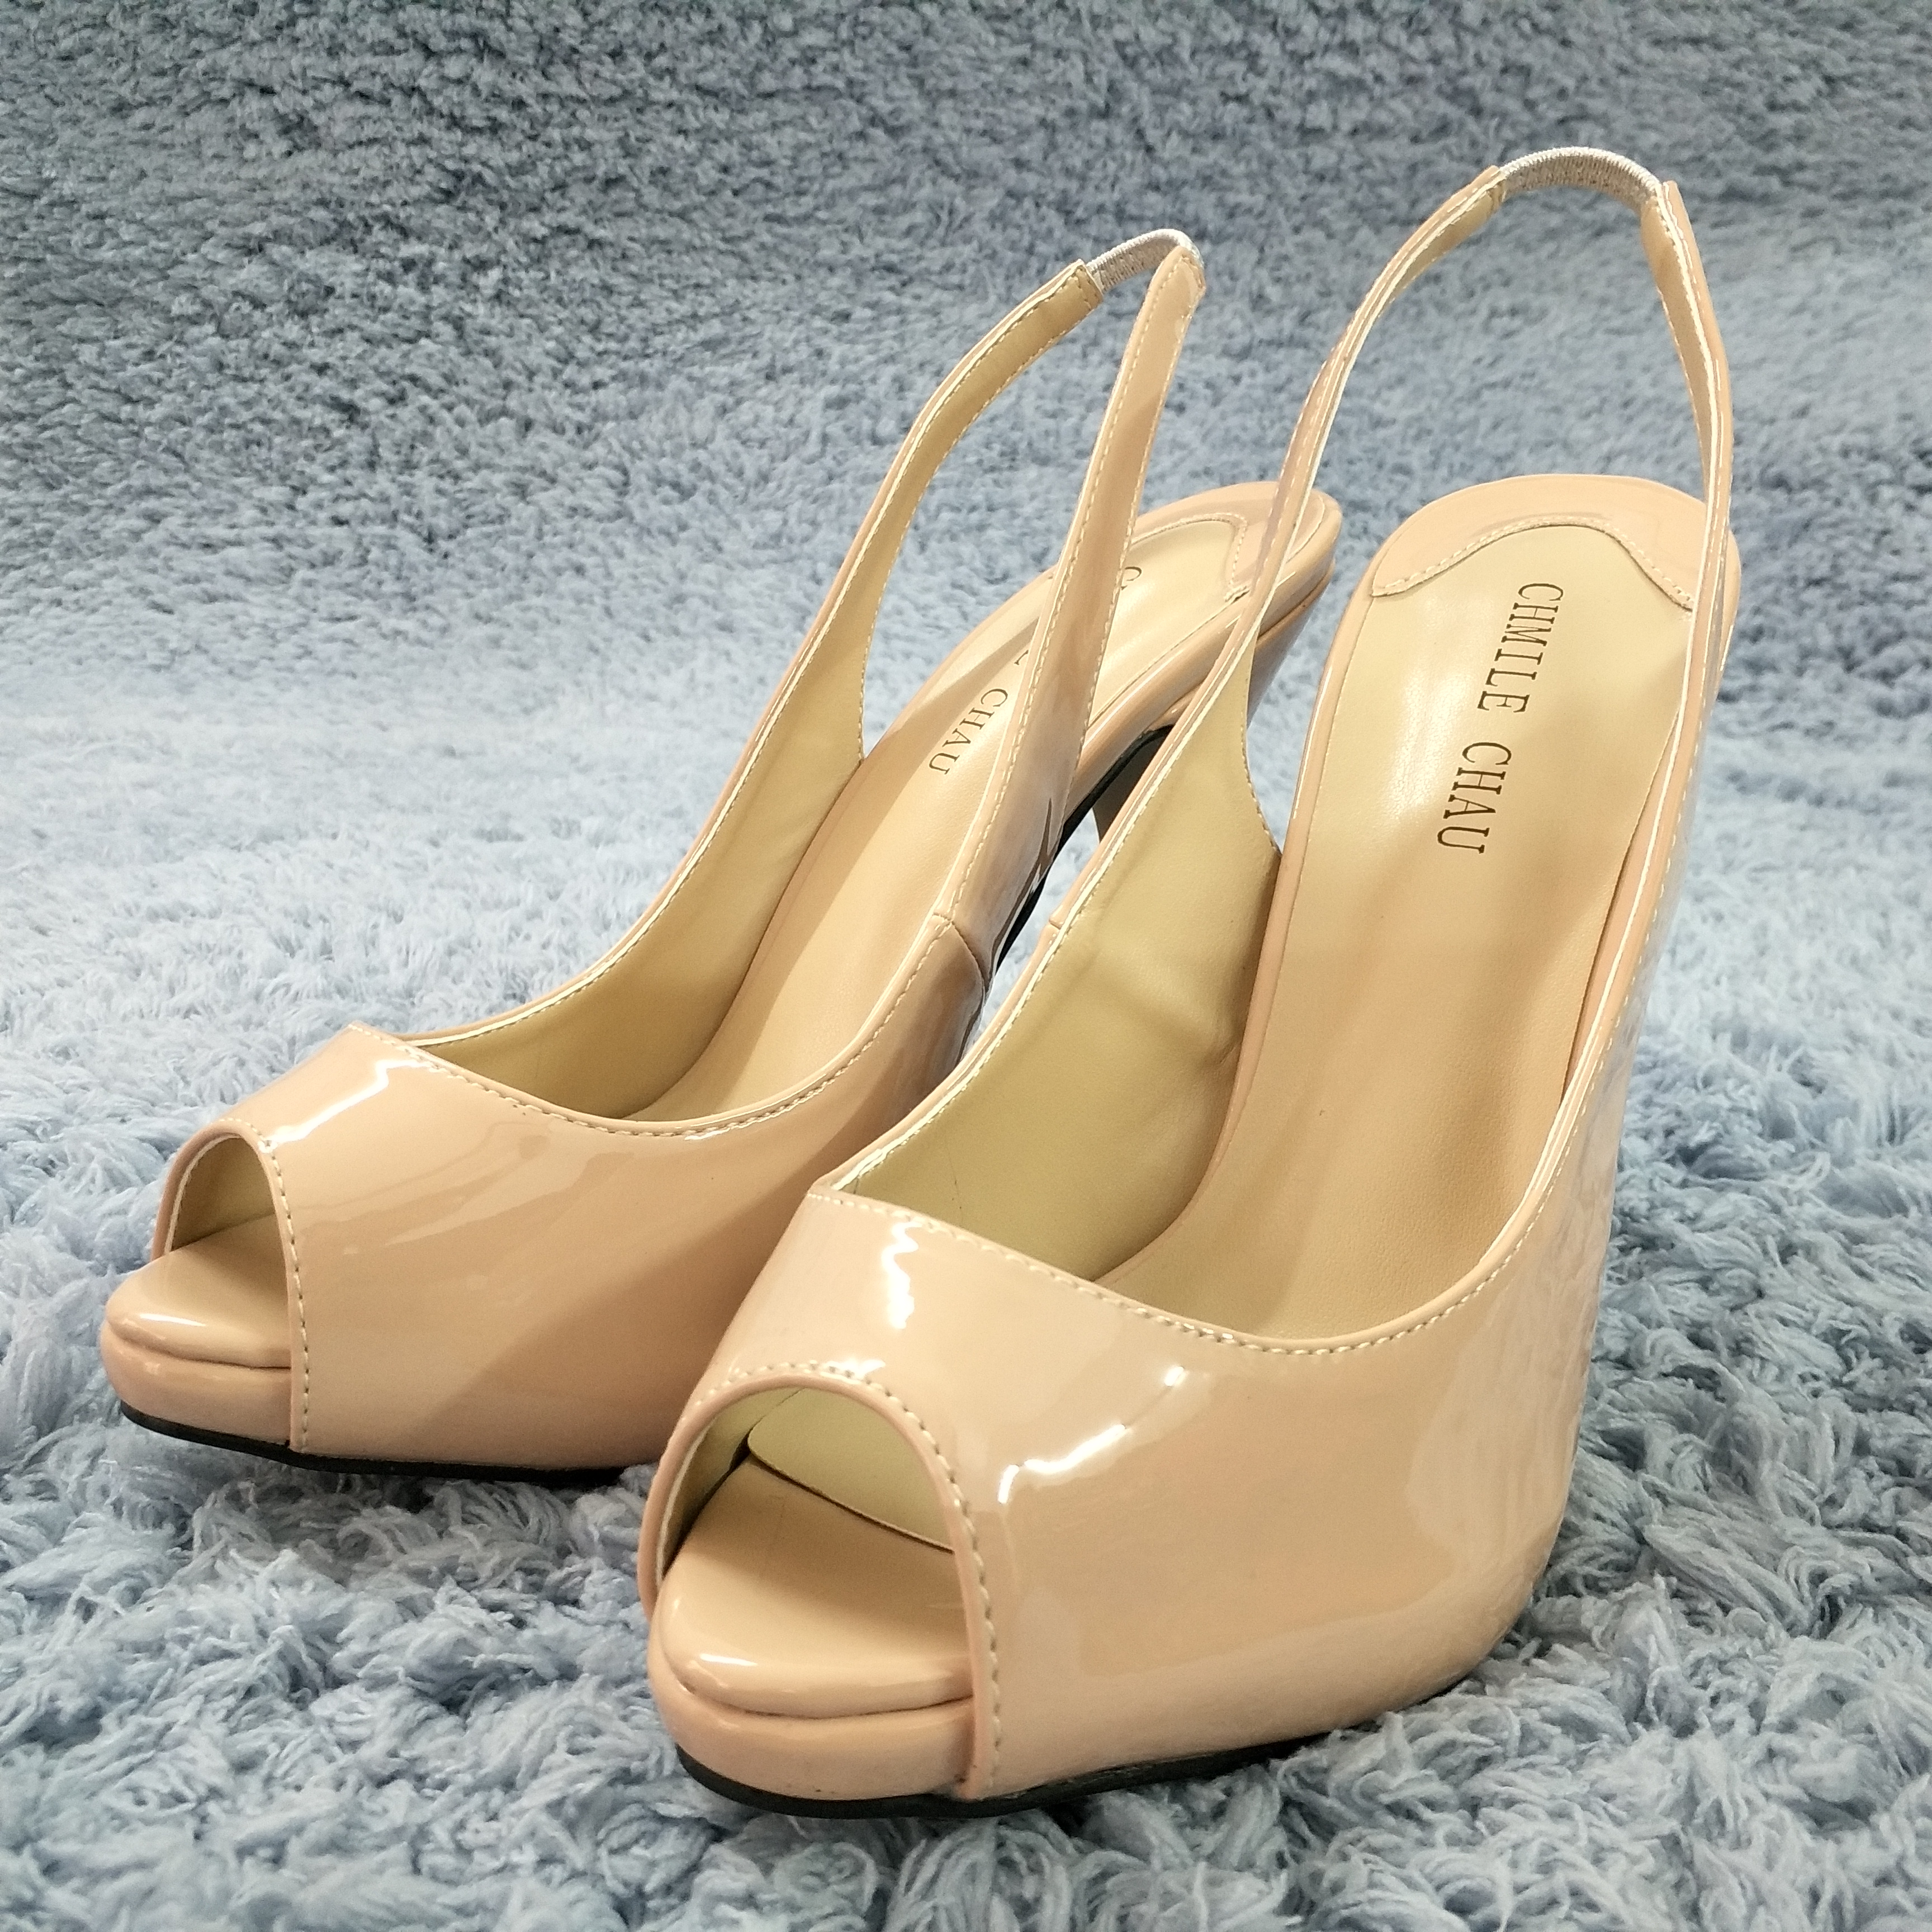 Women Stiletto Thin High Heel Sandals Sexy Slingback Peep Toe Dark Beige Patent Party Bridals Ball Lady Shoes S1 in High Heels from Shoes